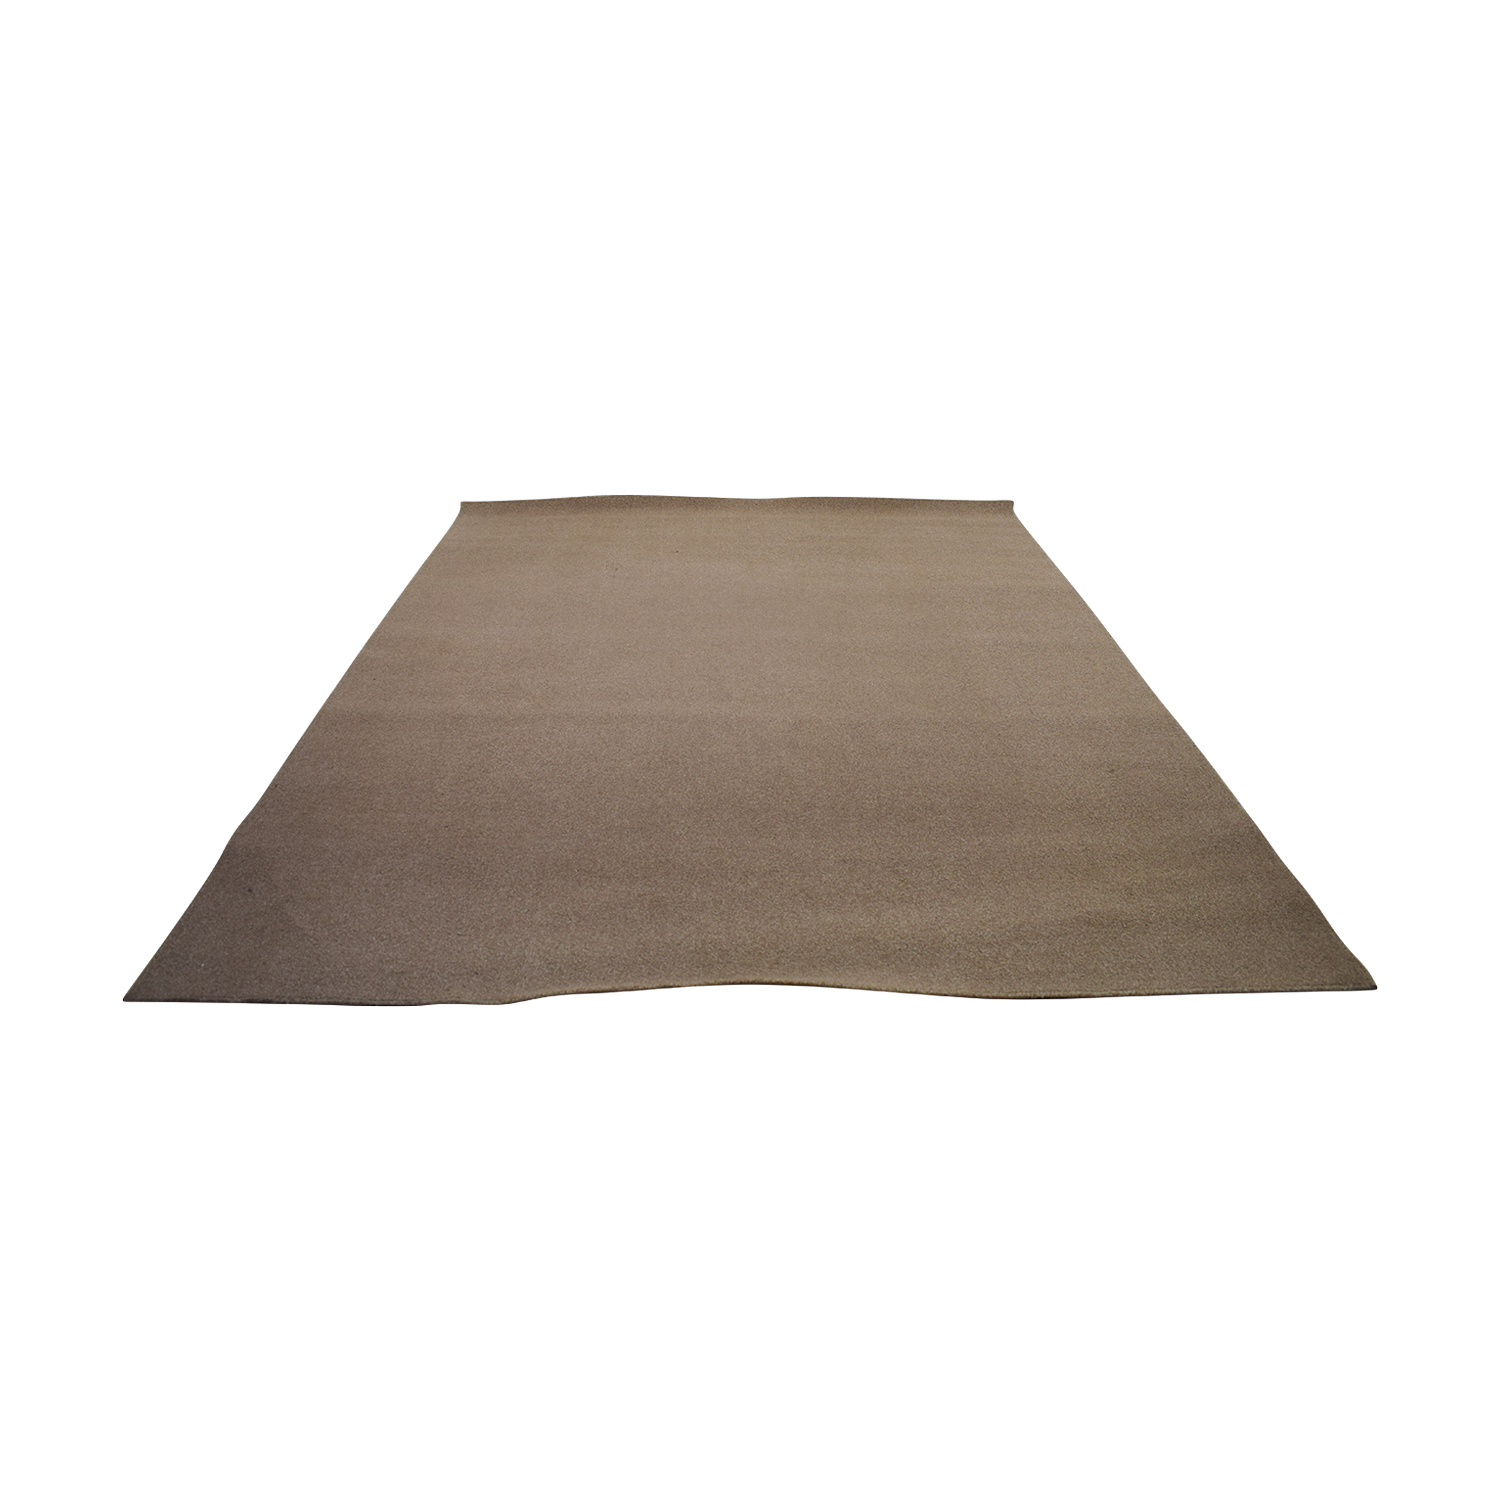 90 Off Bed Bath Beyond Bed Bath Beyond Tan Area Rug Decor